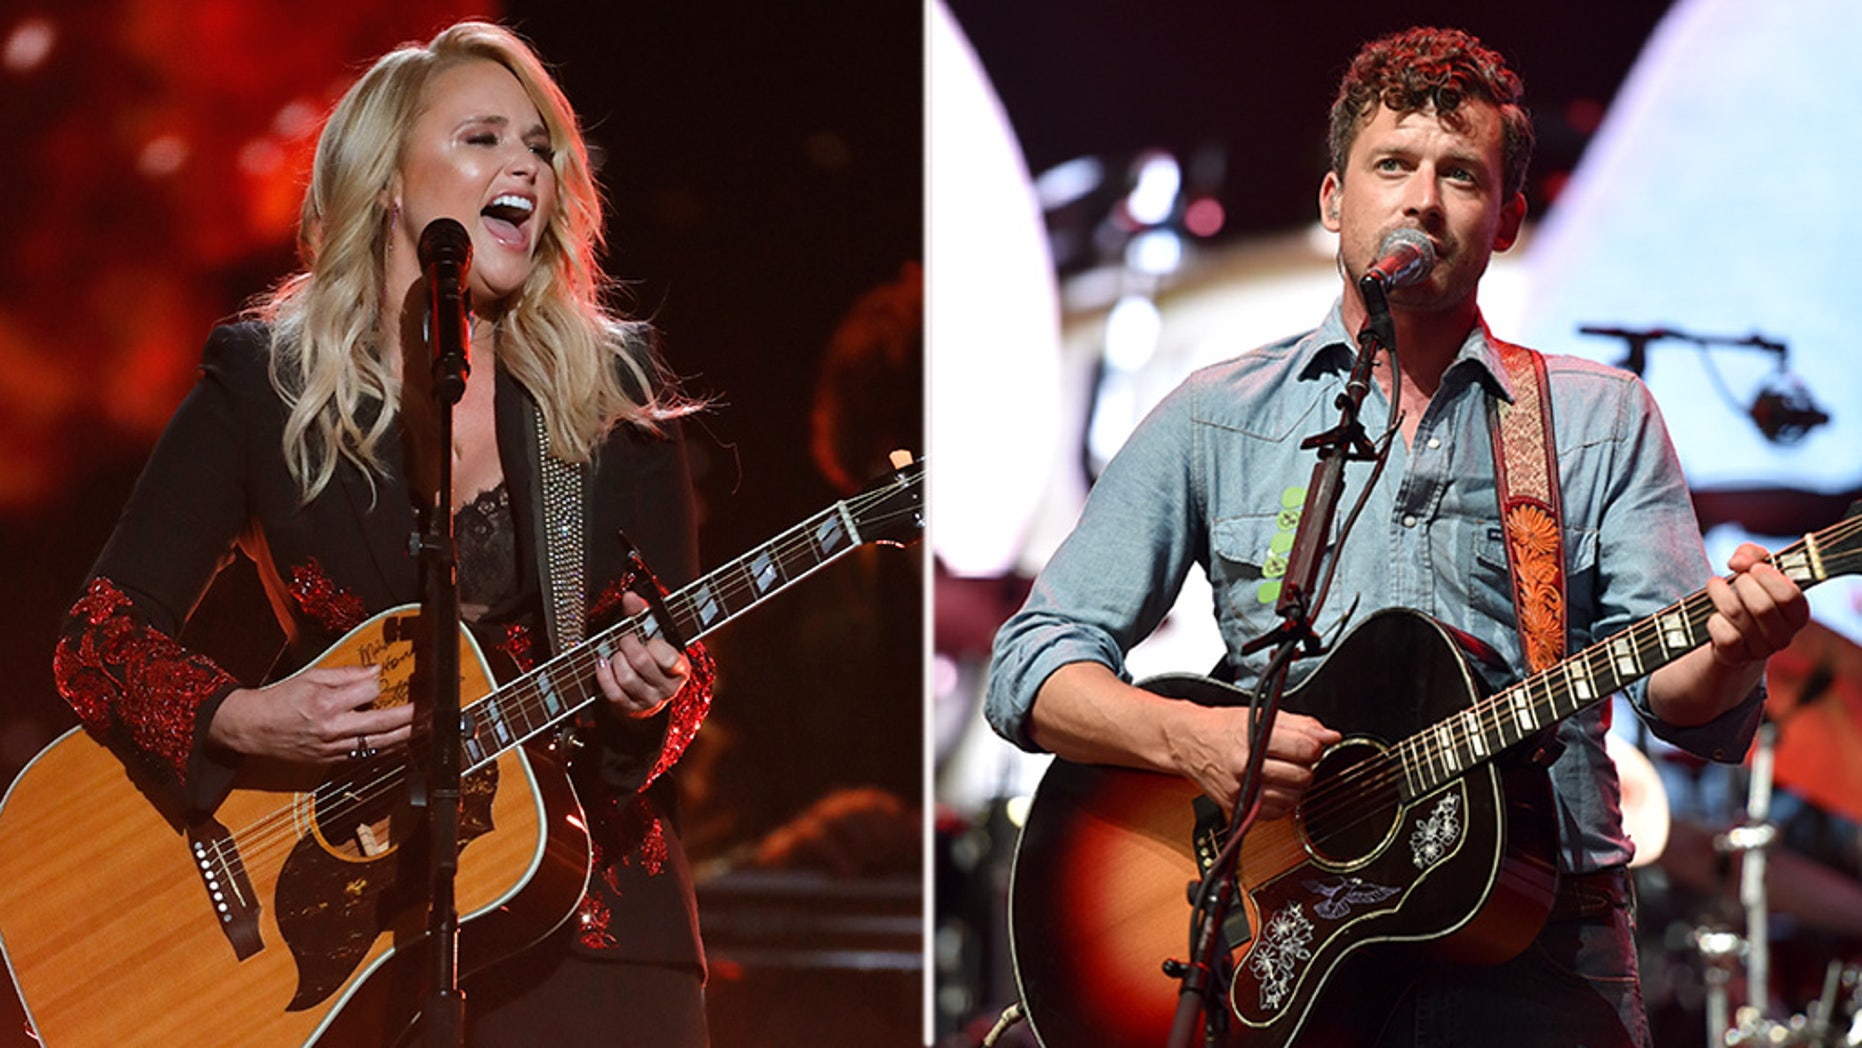 Miranda Lambert's boyfriend Evan Felker, right, has reportedly finalized his divorce from wife, Stacy Felker, according to Page Six.